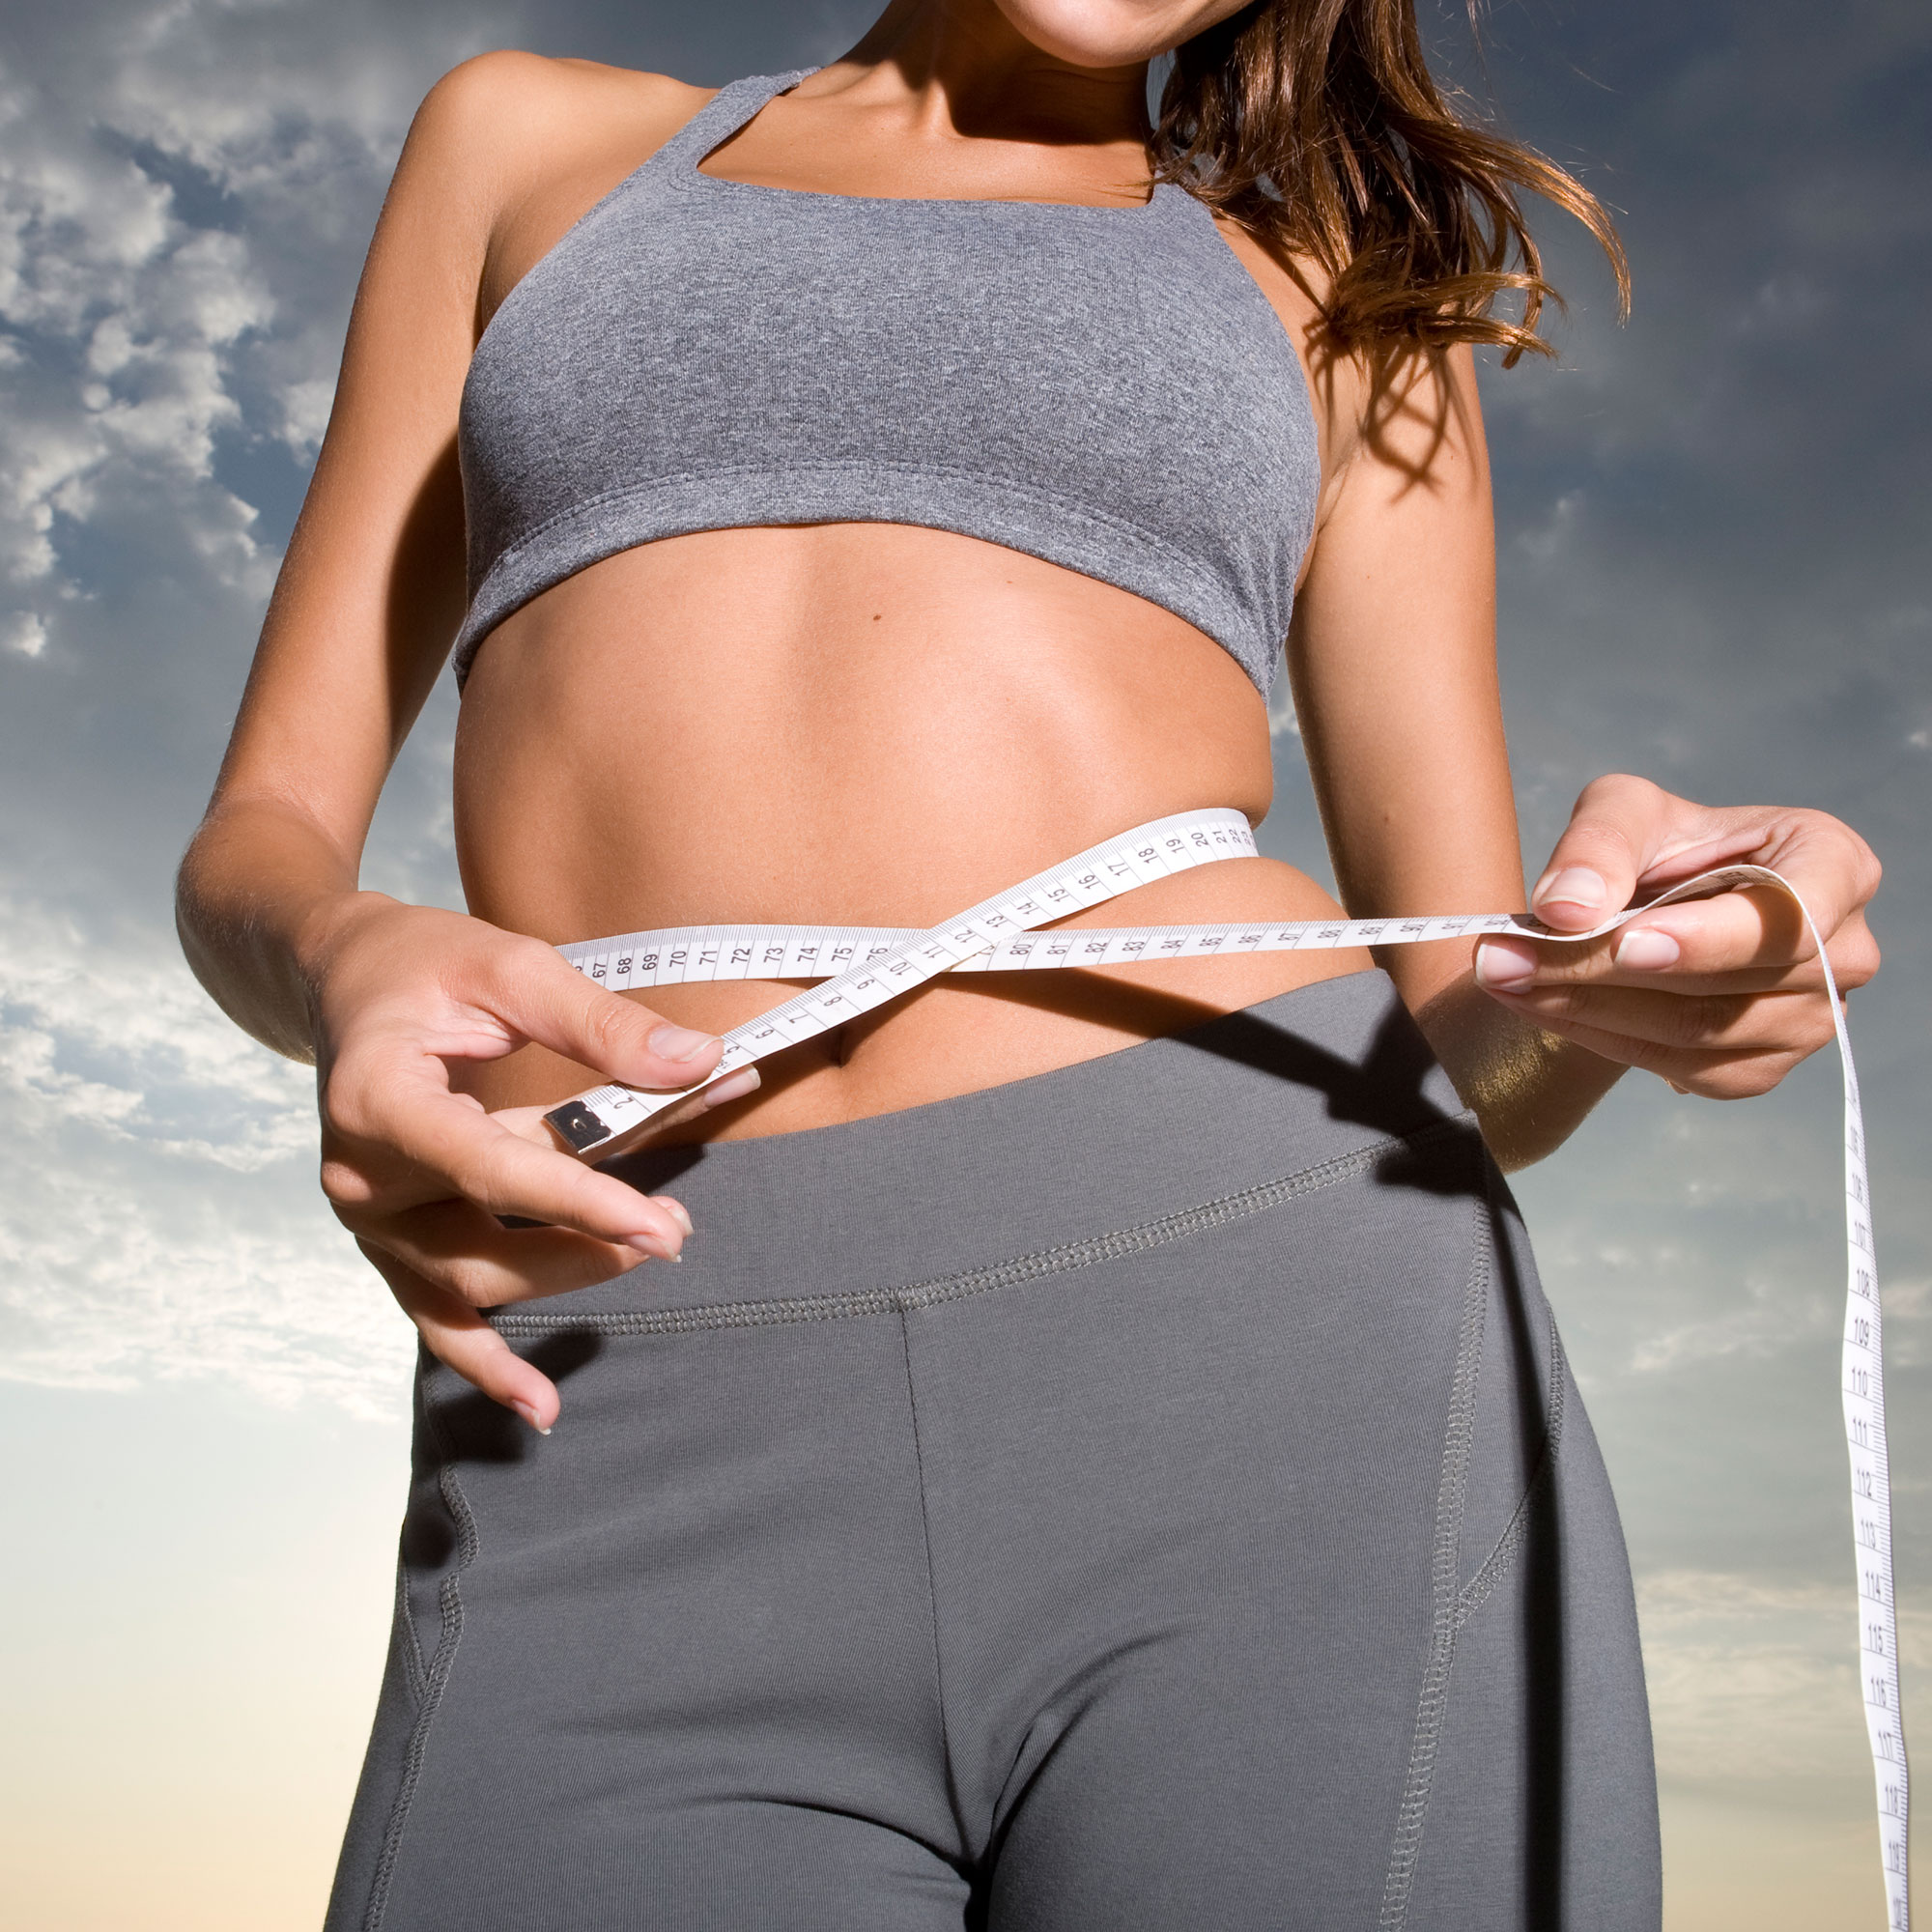 An Effective & Superb Way to Help You Lose Weight